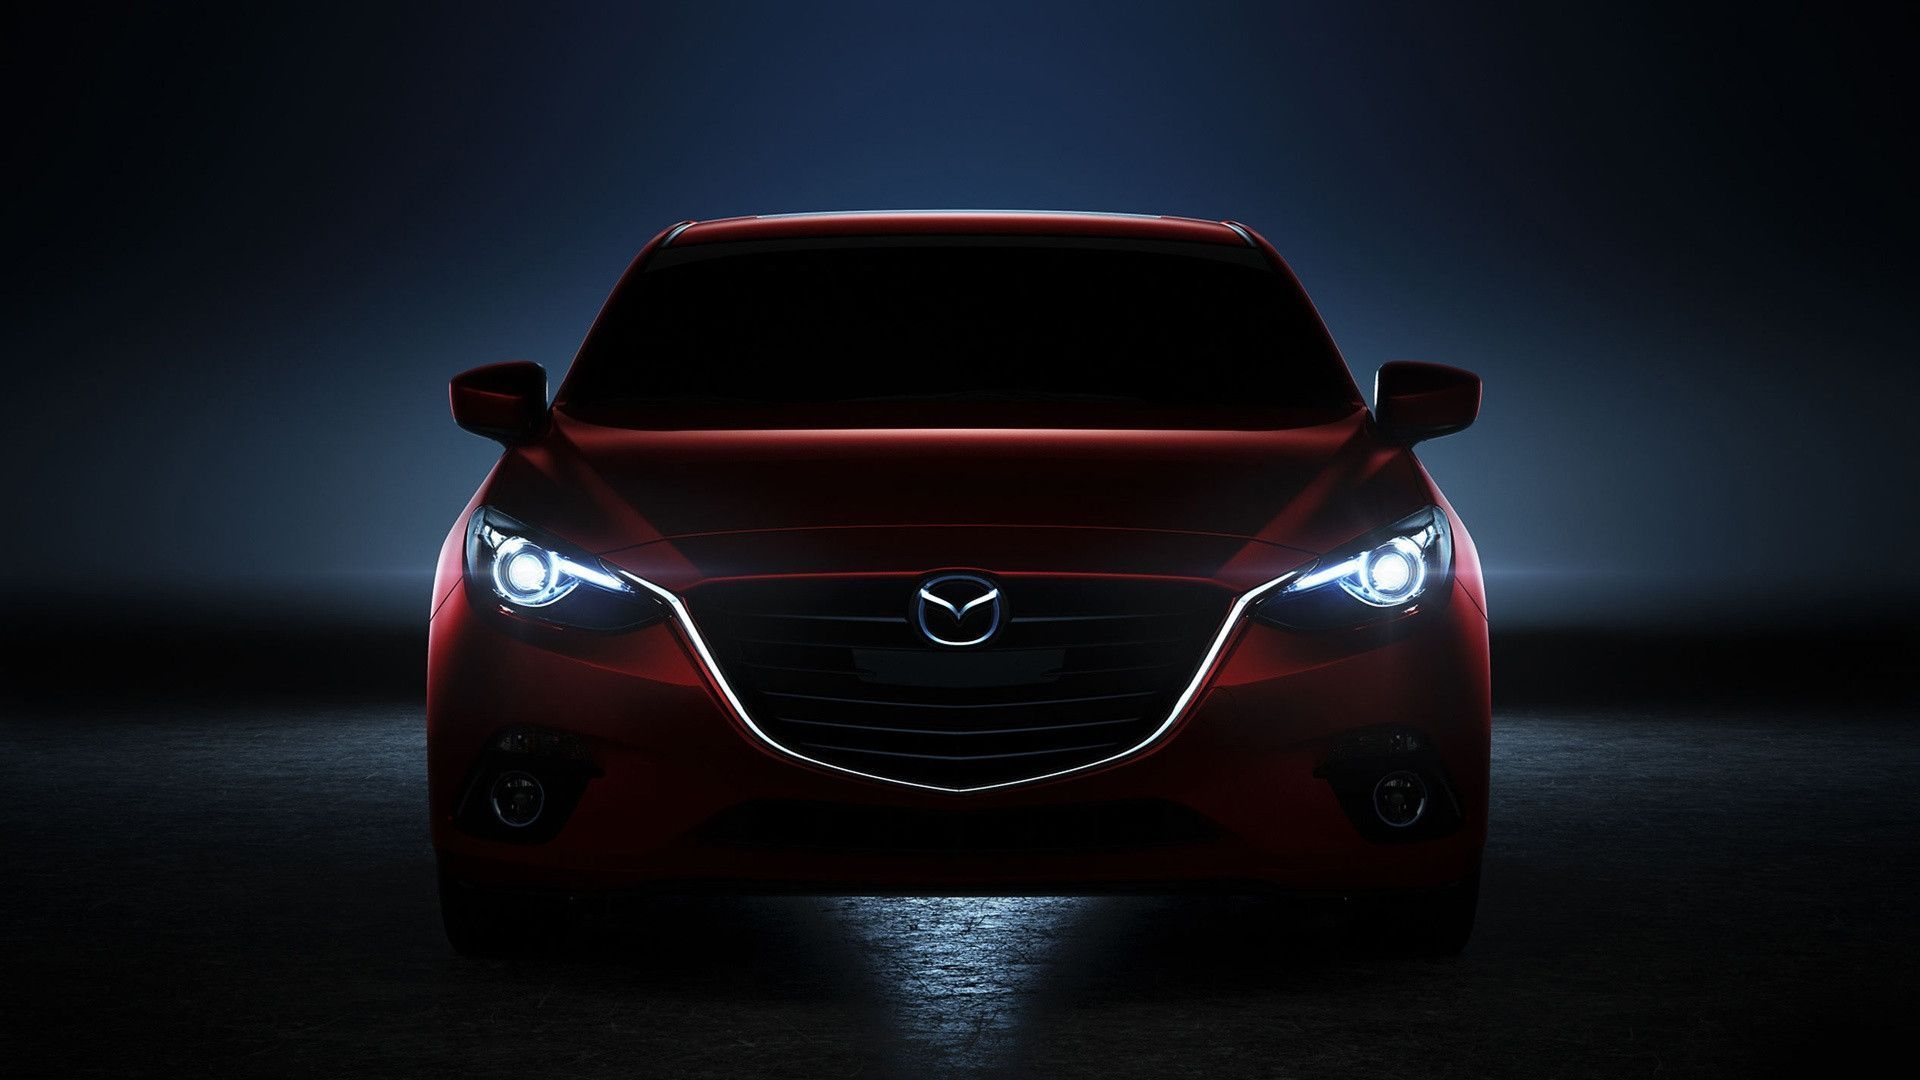 1920x1080 - Mazda Wallpapers 17